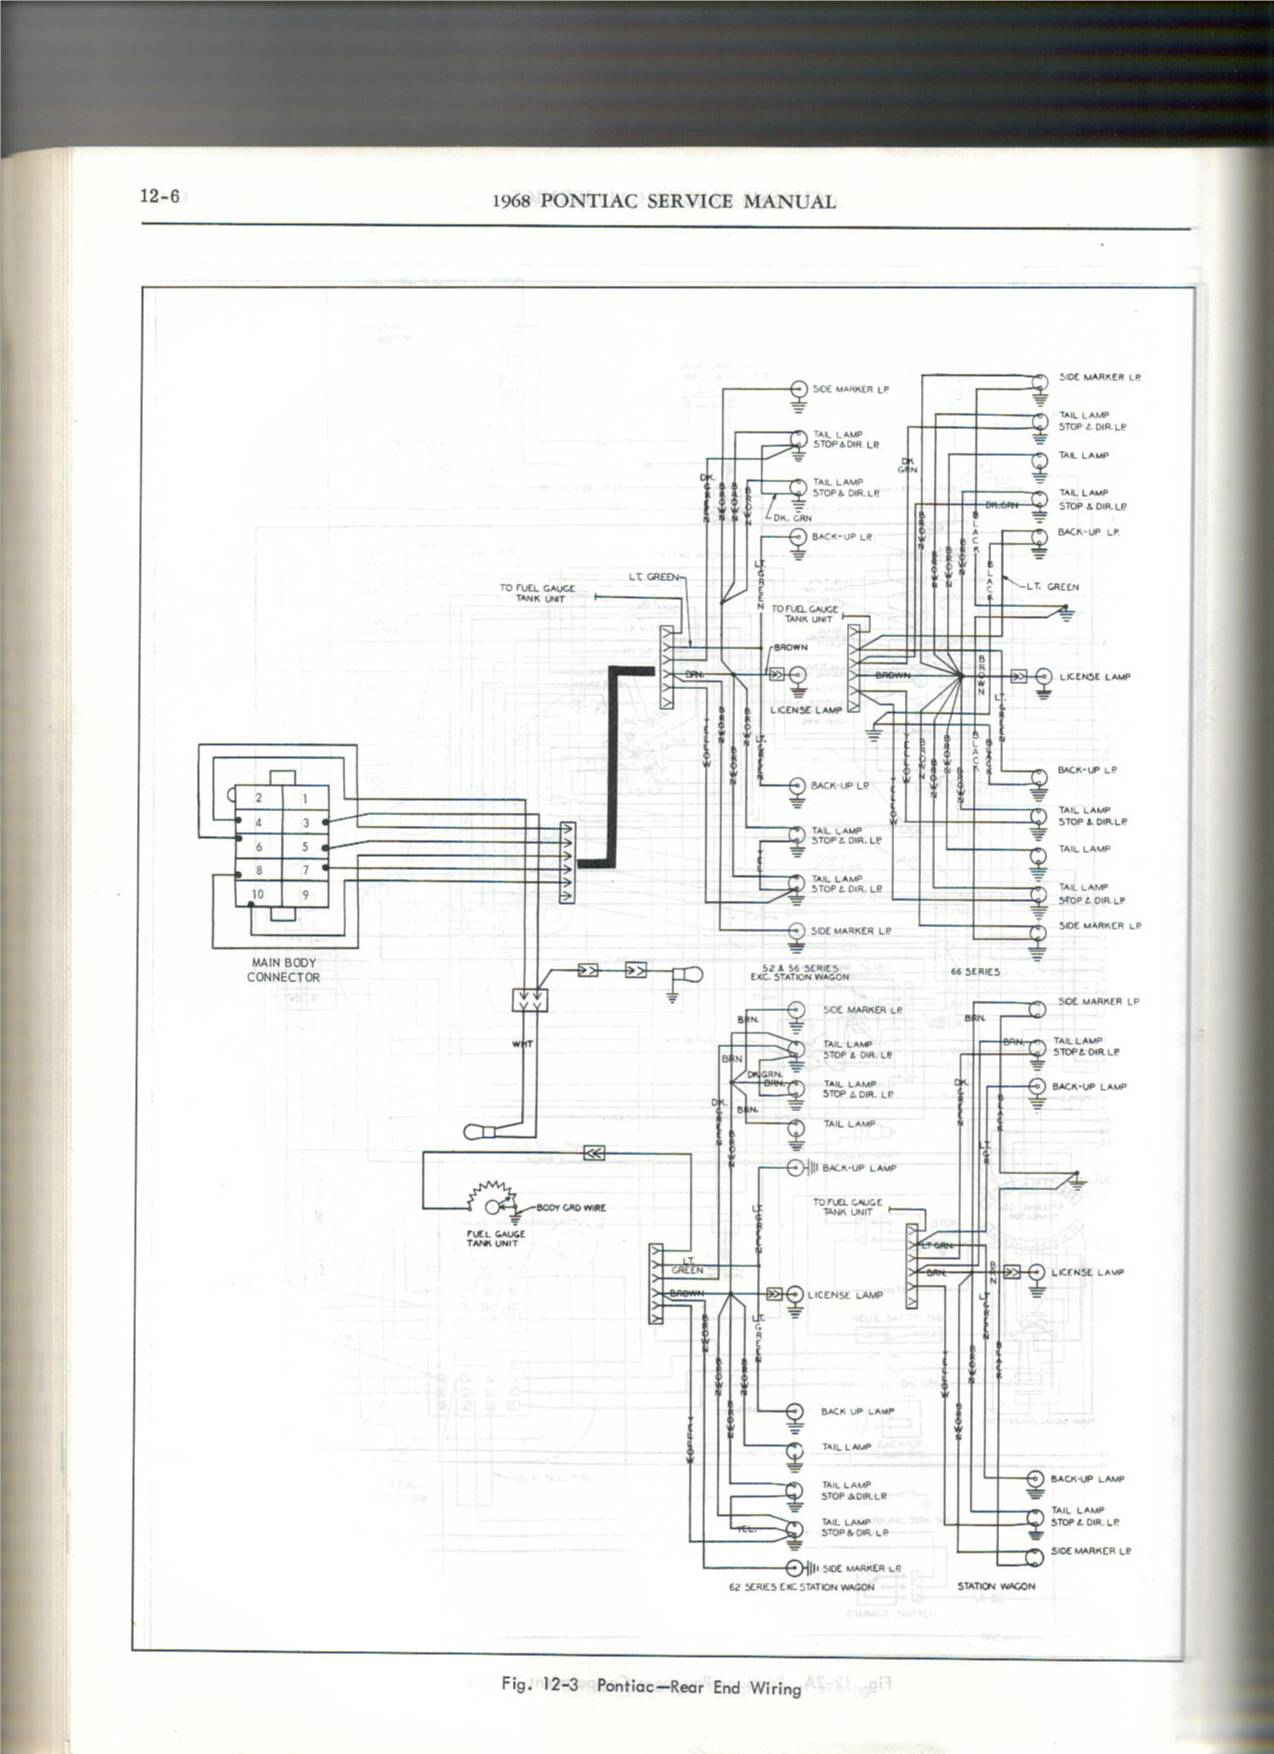 gto wiring diagram scans page 2 pontiac gto forum click image for larger version 68 tail jpg views 20001 size